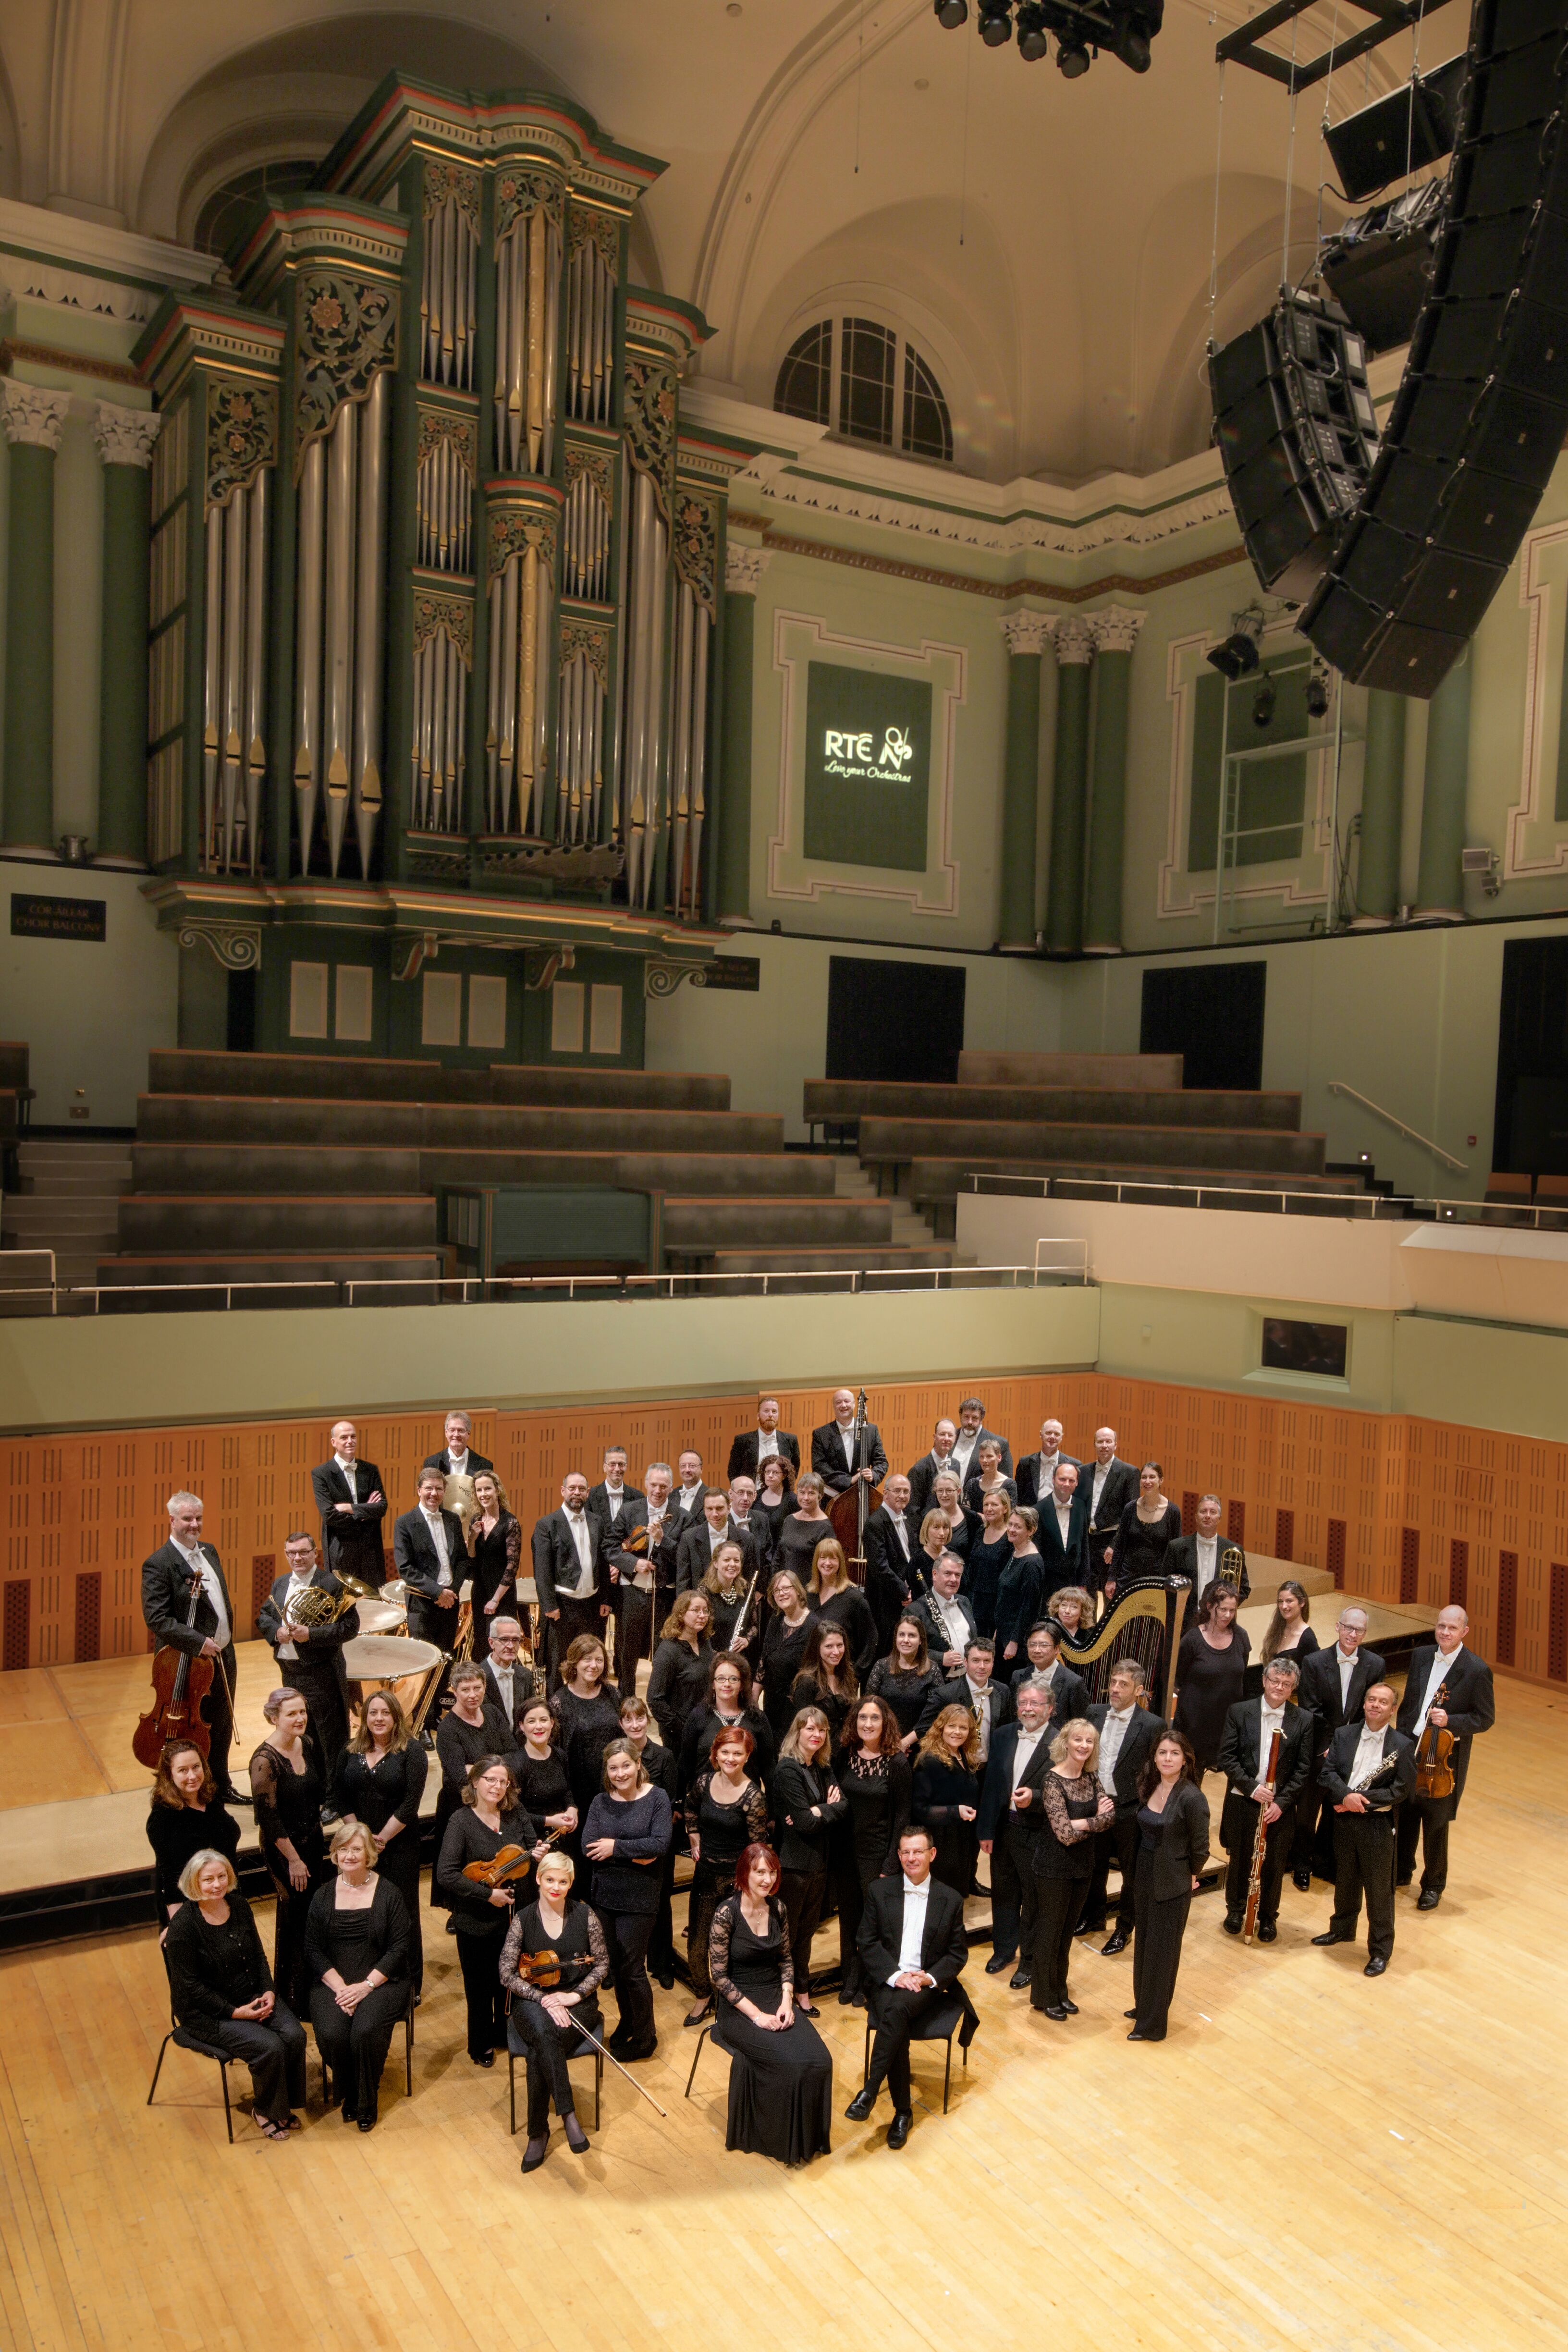 RTE National Symphonic Orchestra - Classical music concerts galway